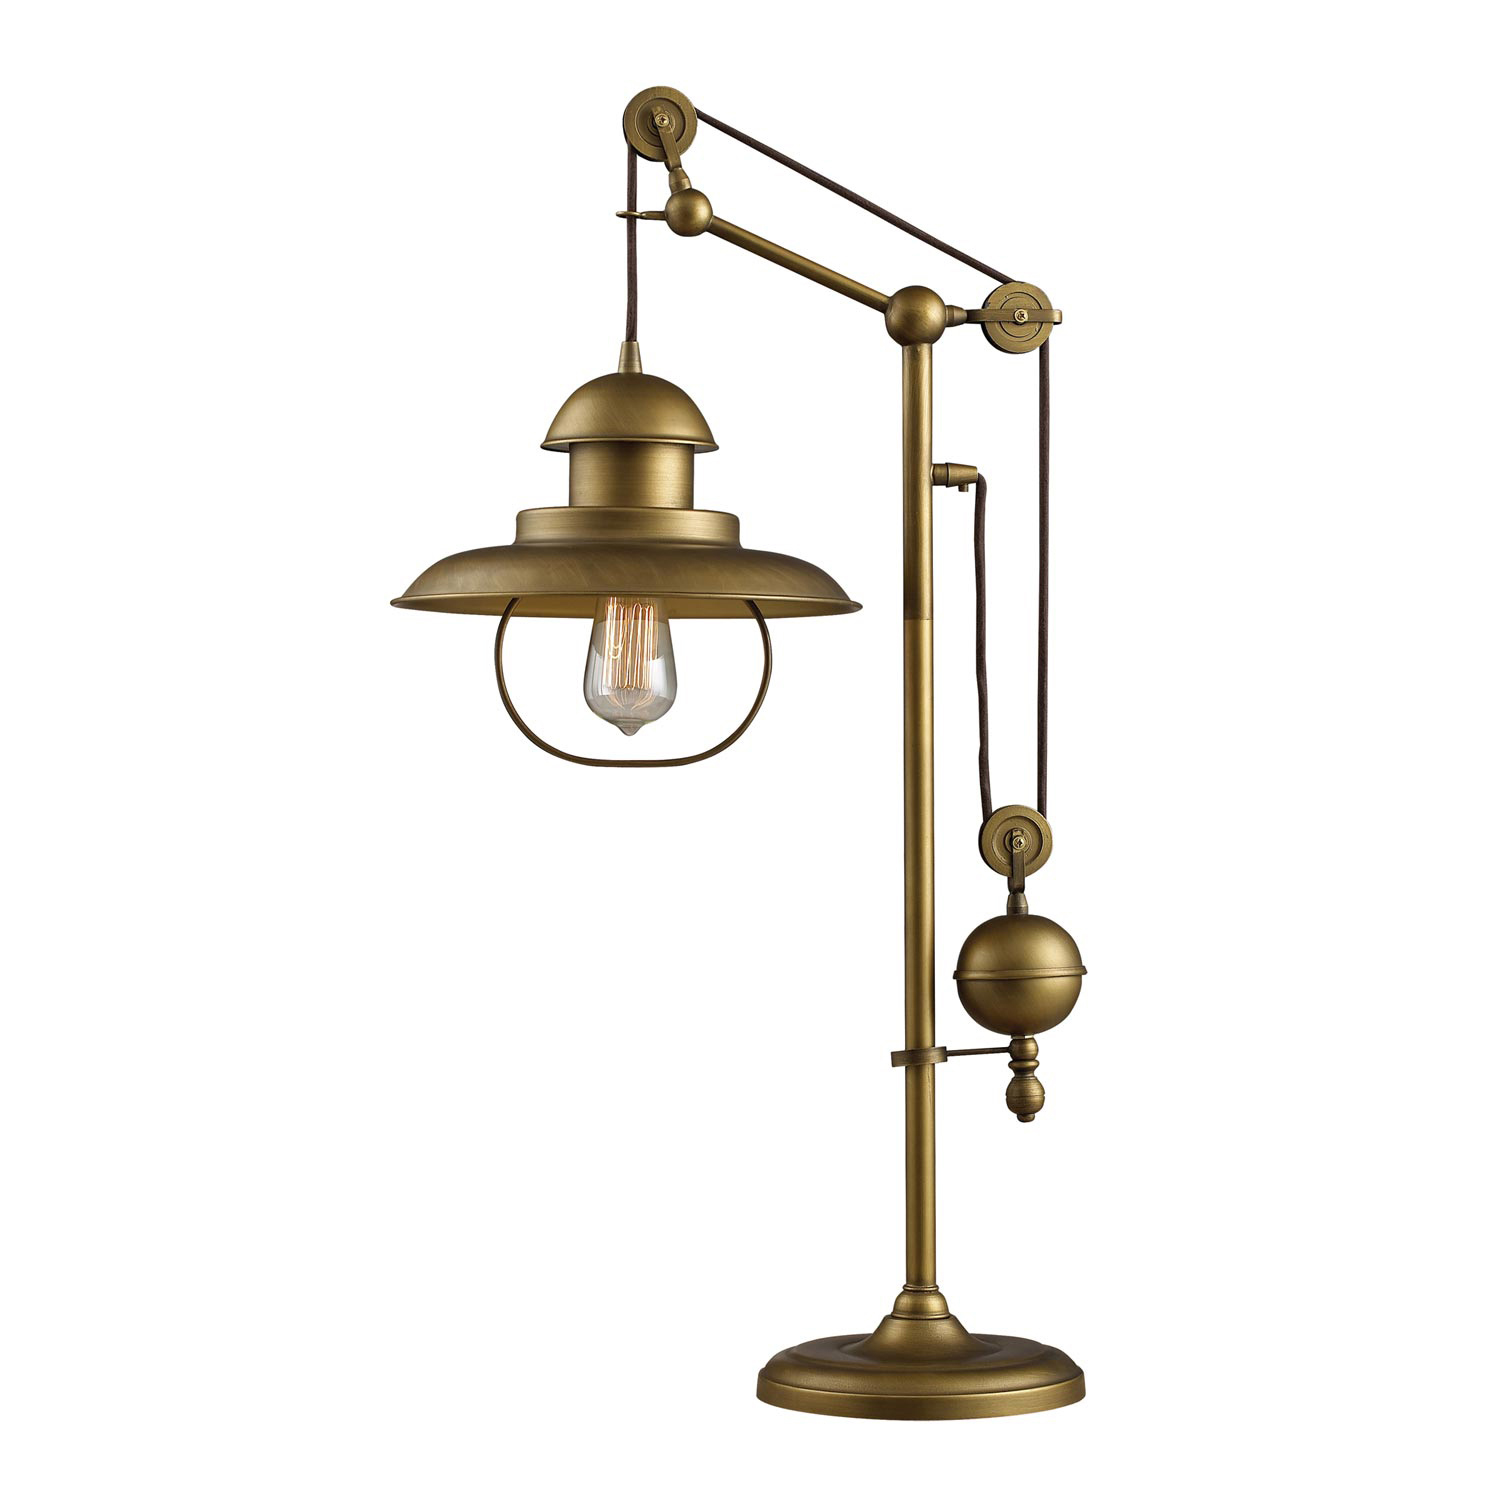 Elk Lighting D2252 Farmhouse Table Lamp - Antique Brass